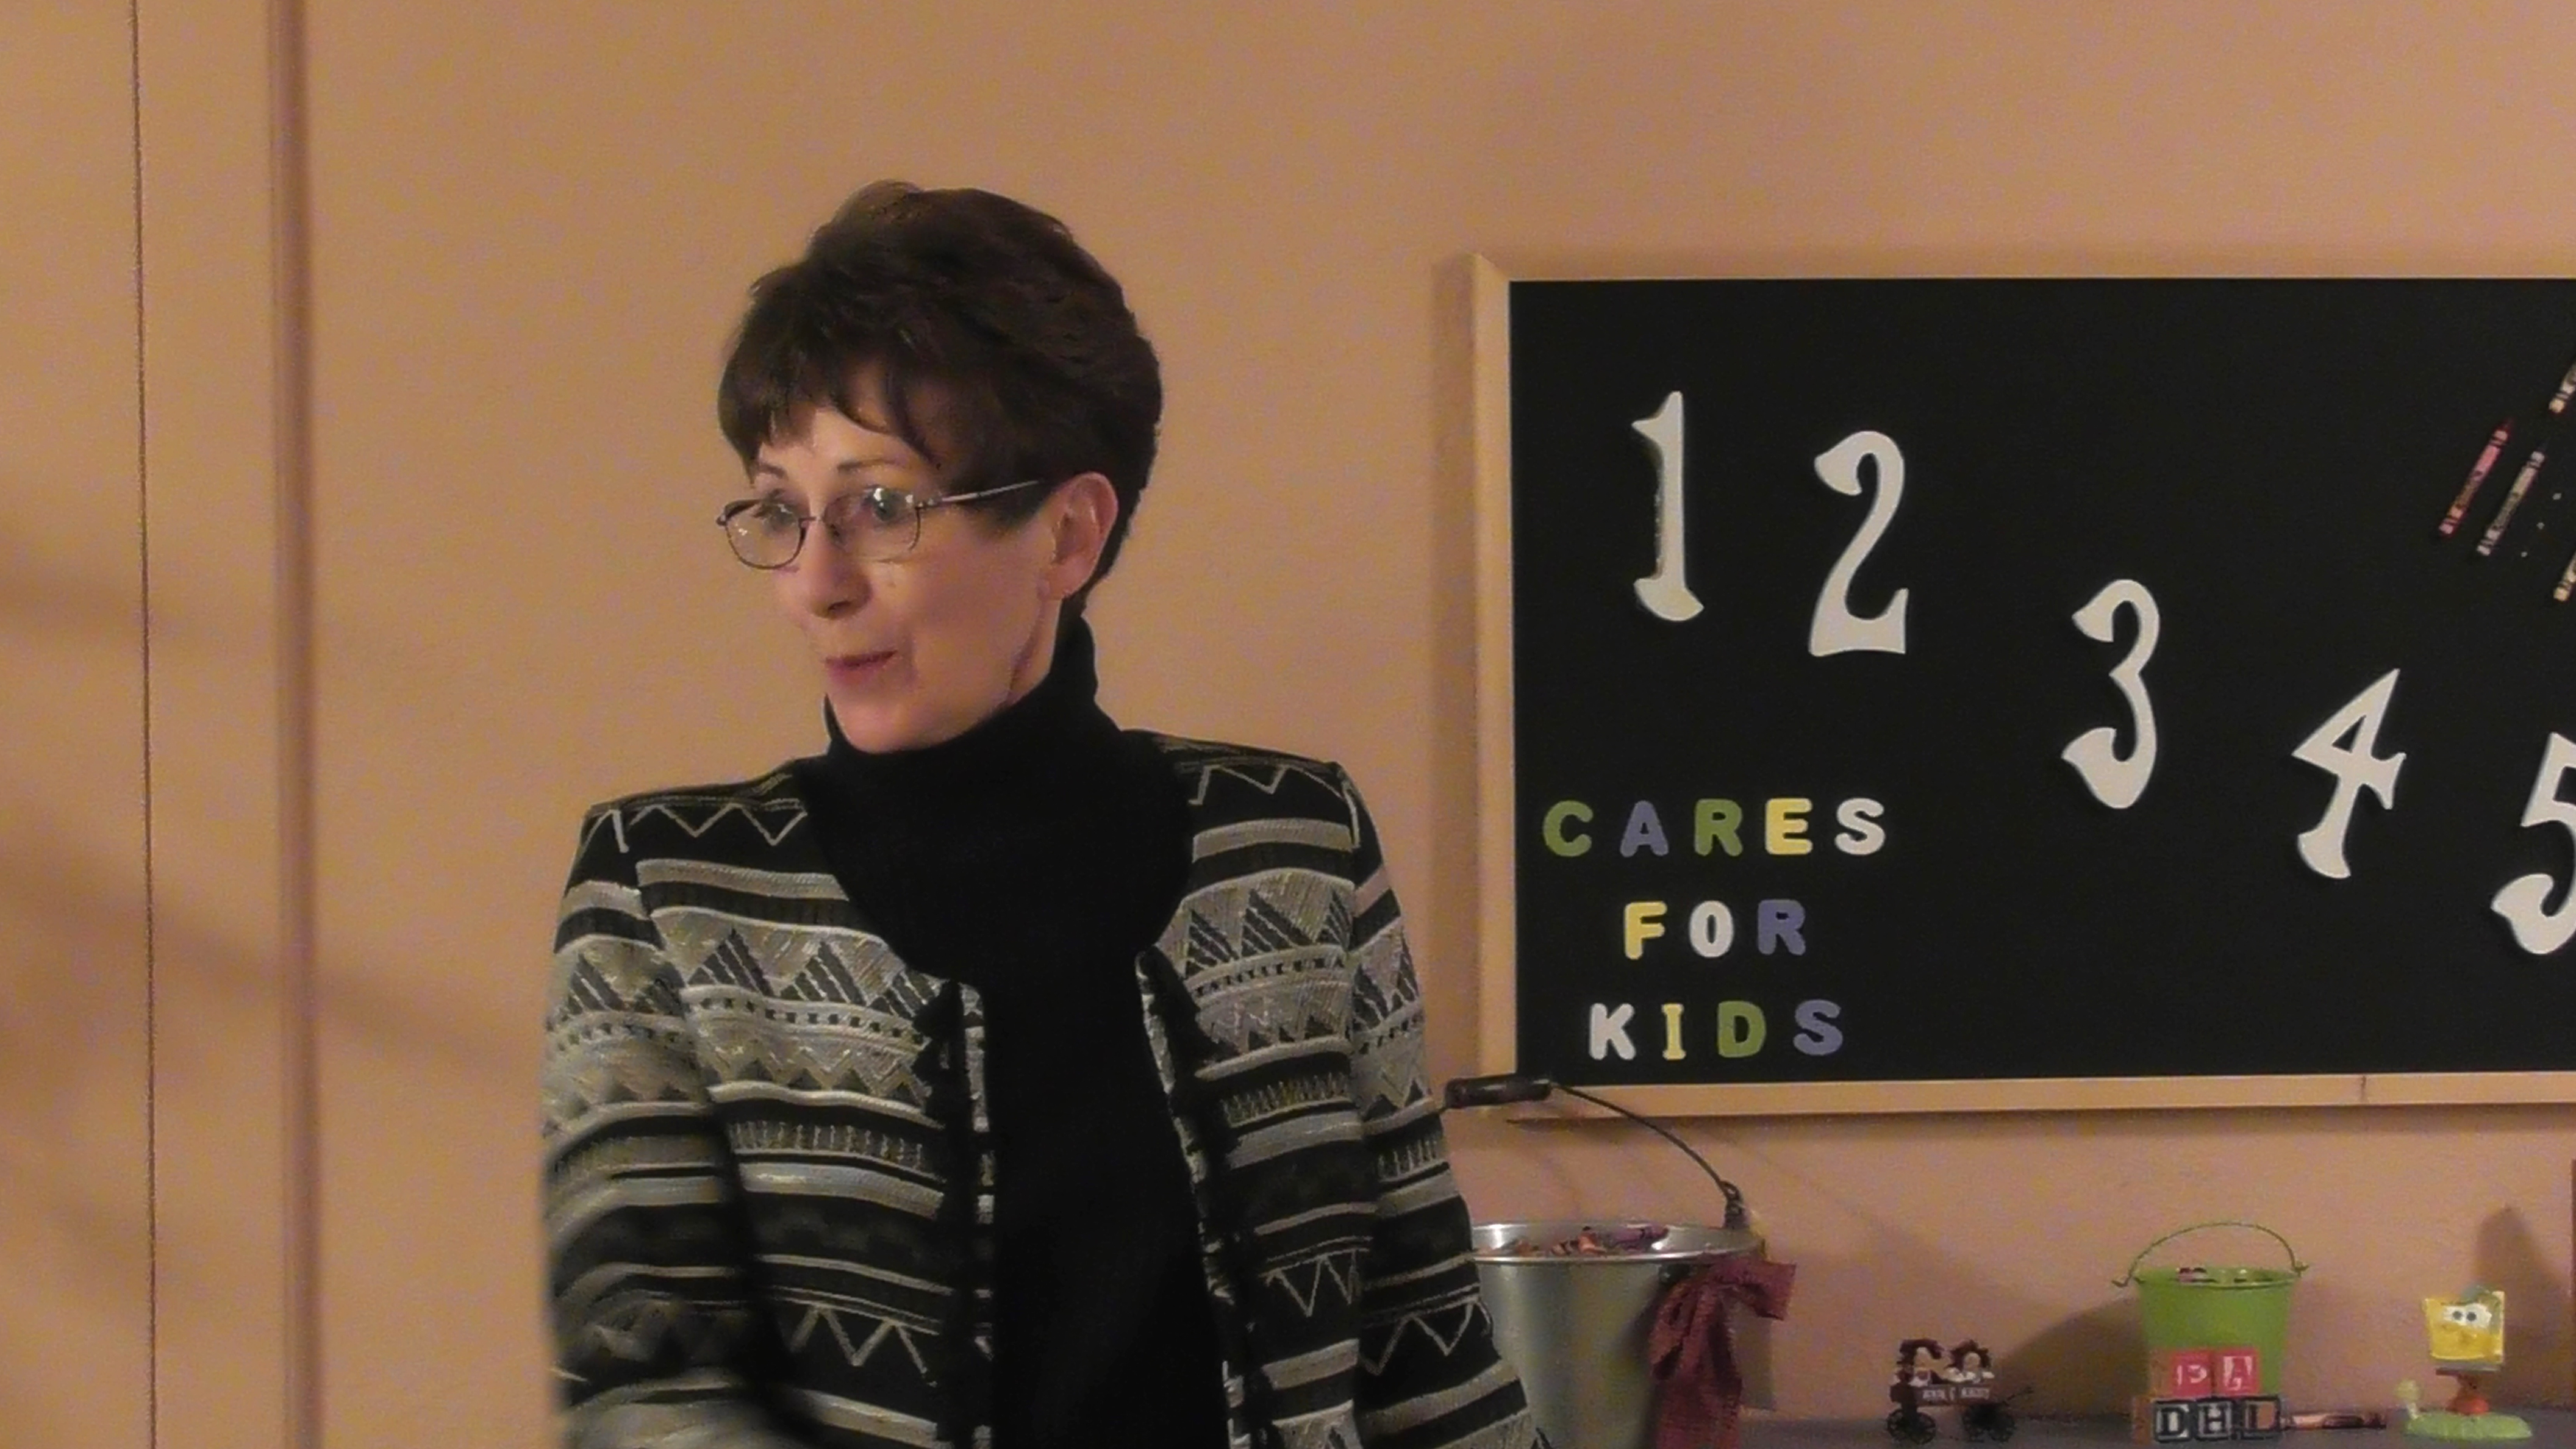 Pat Berger-Western PA Cares For Kids Center